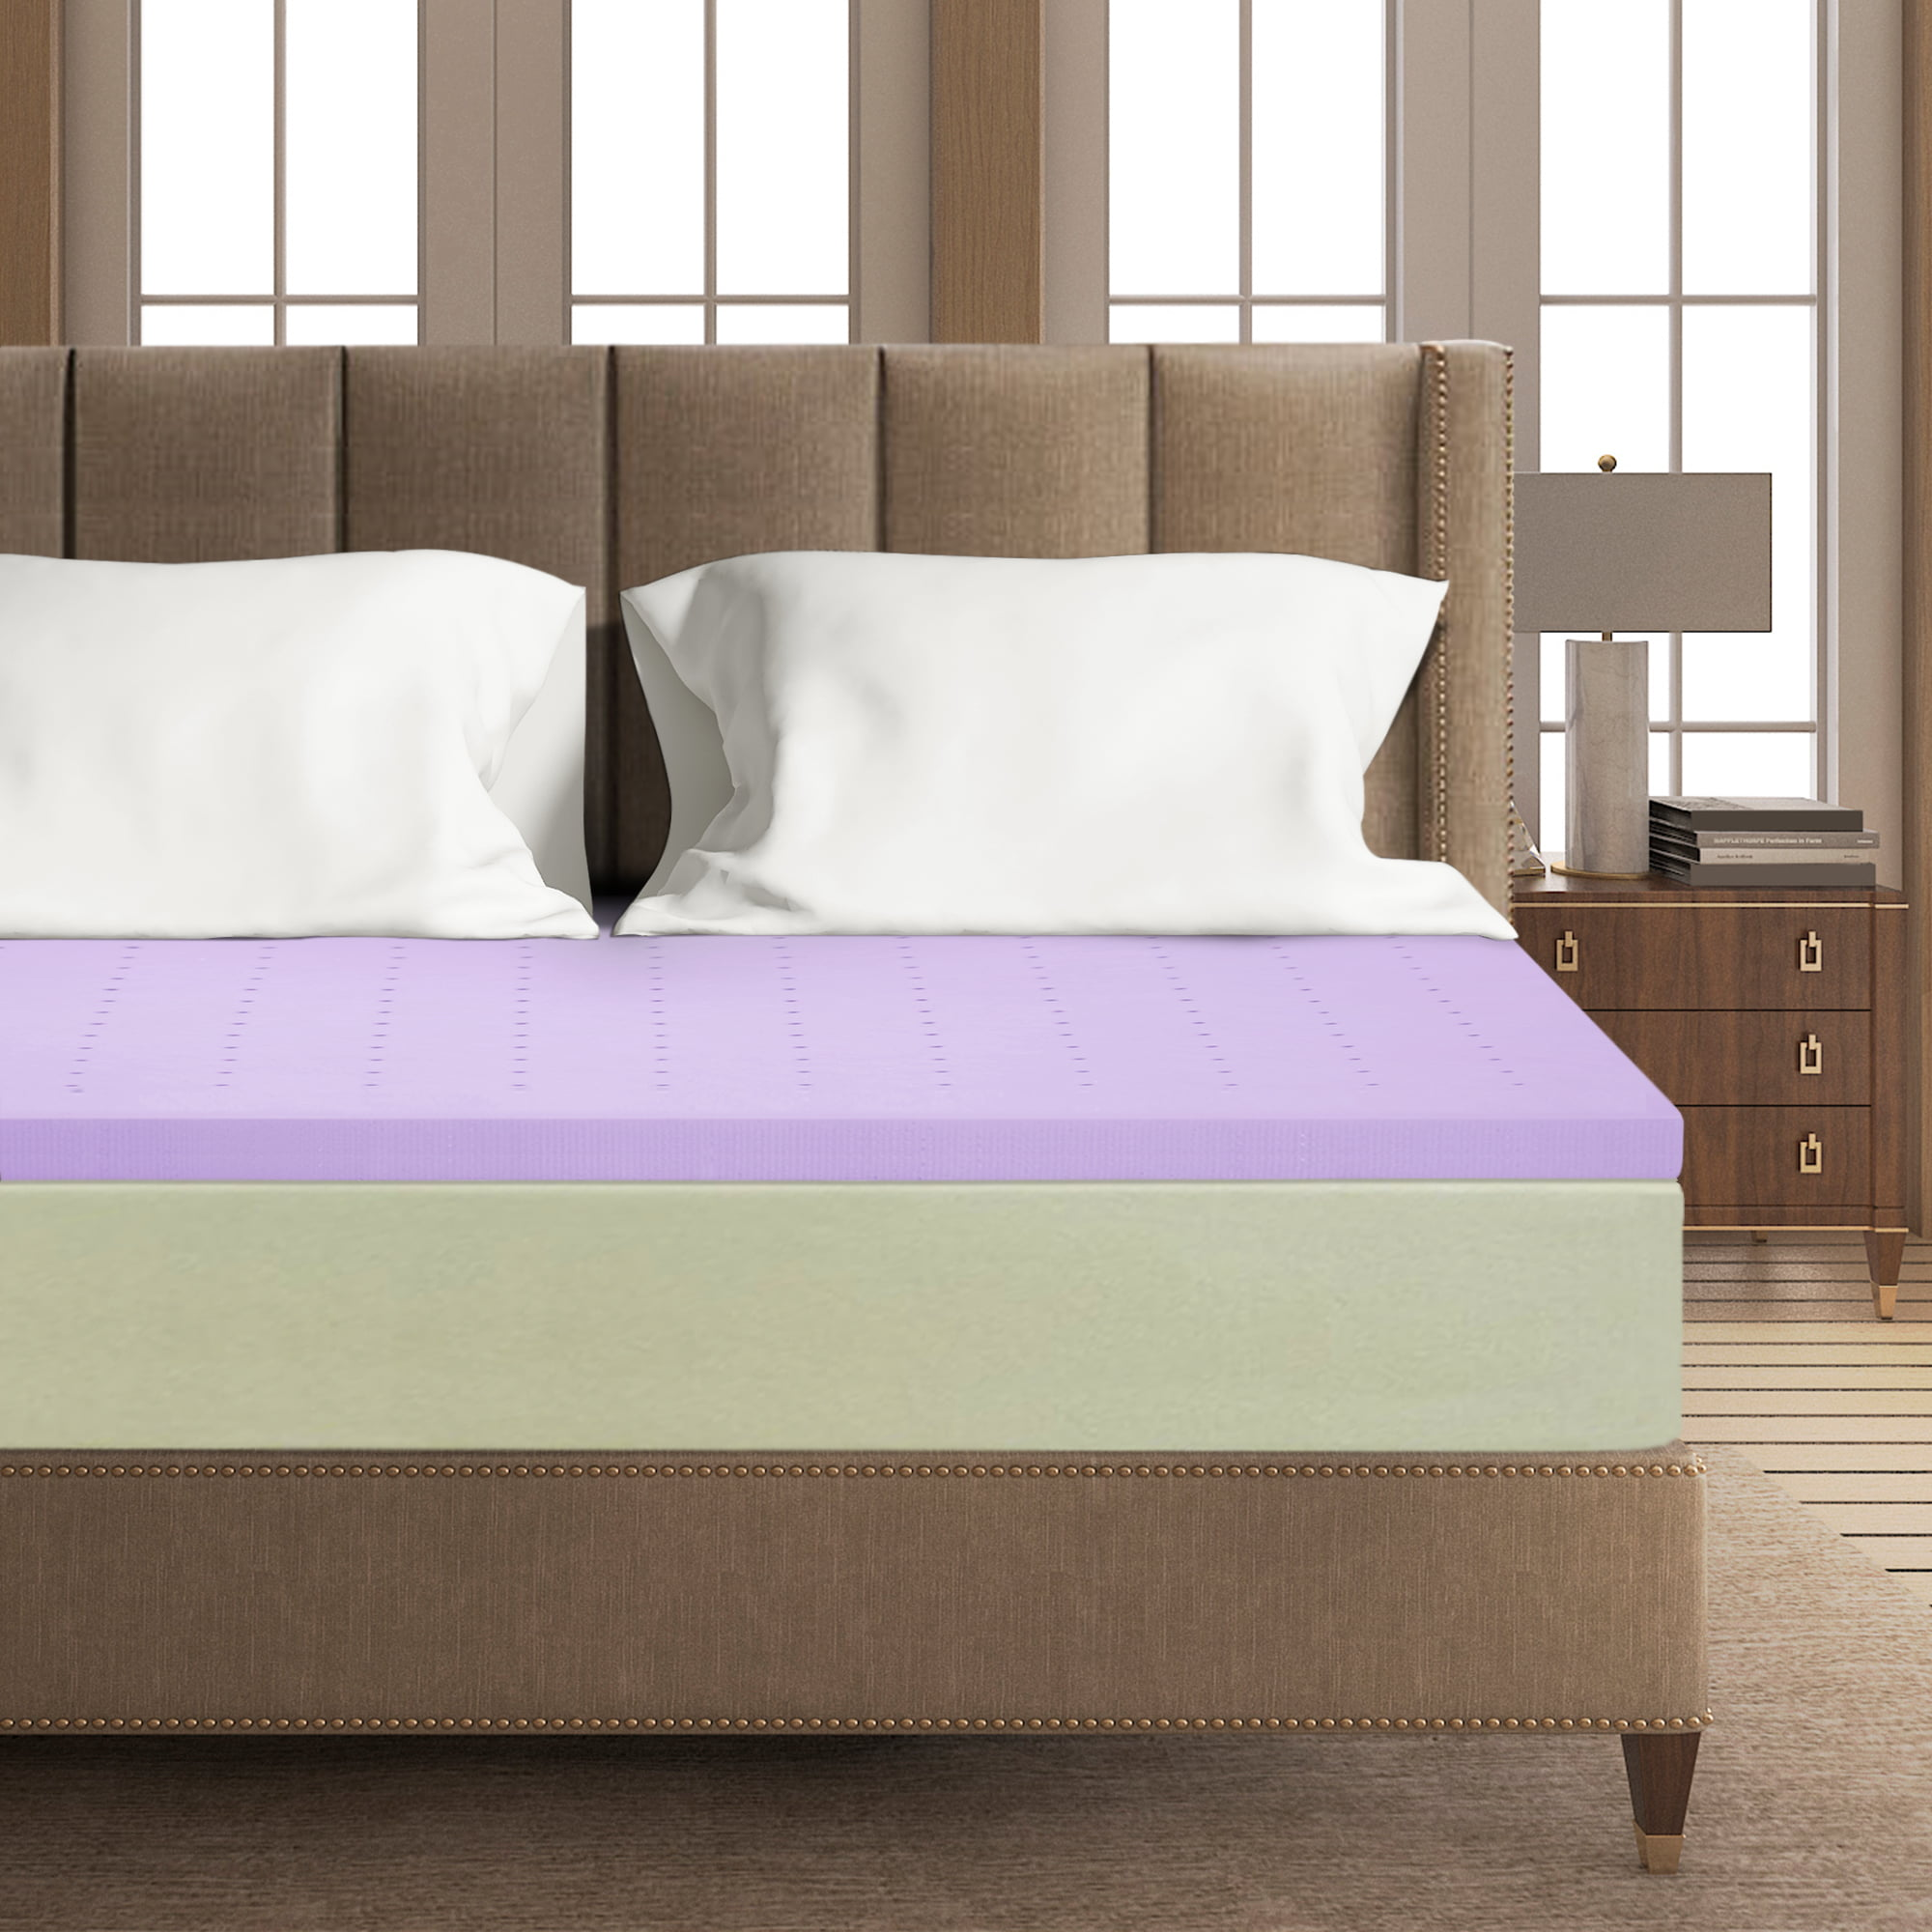 Best Price Mattress Inch Lavender Memory Foam